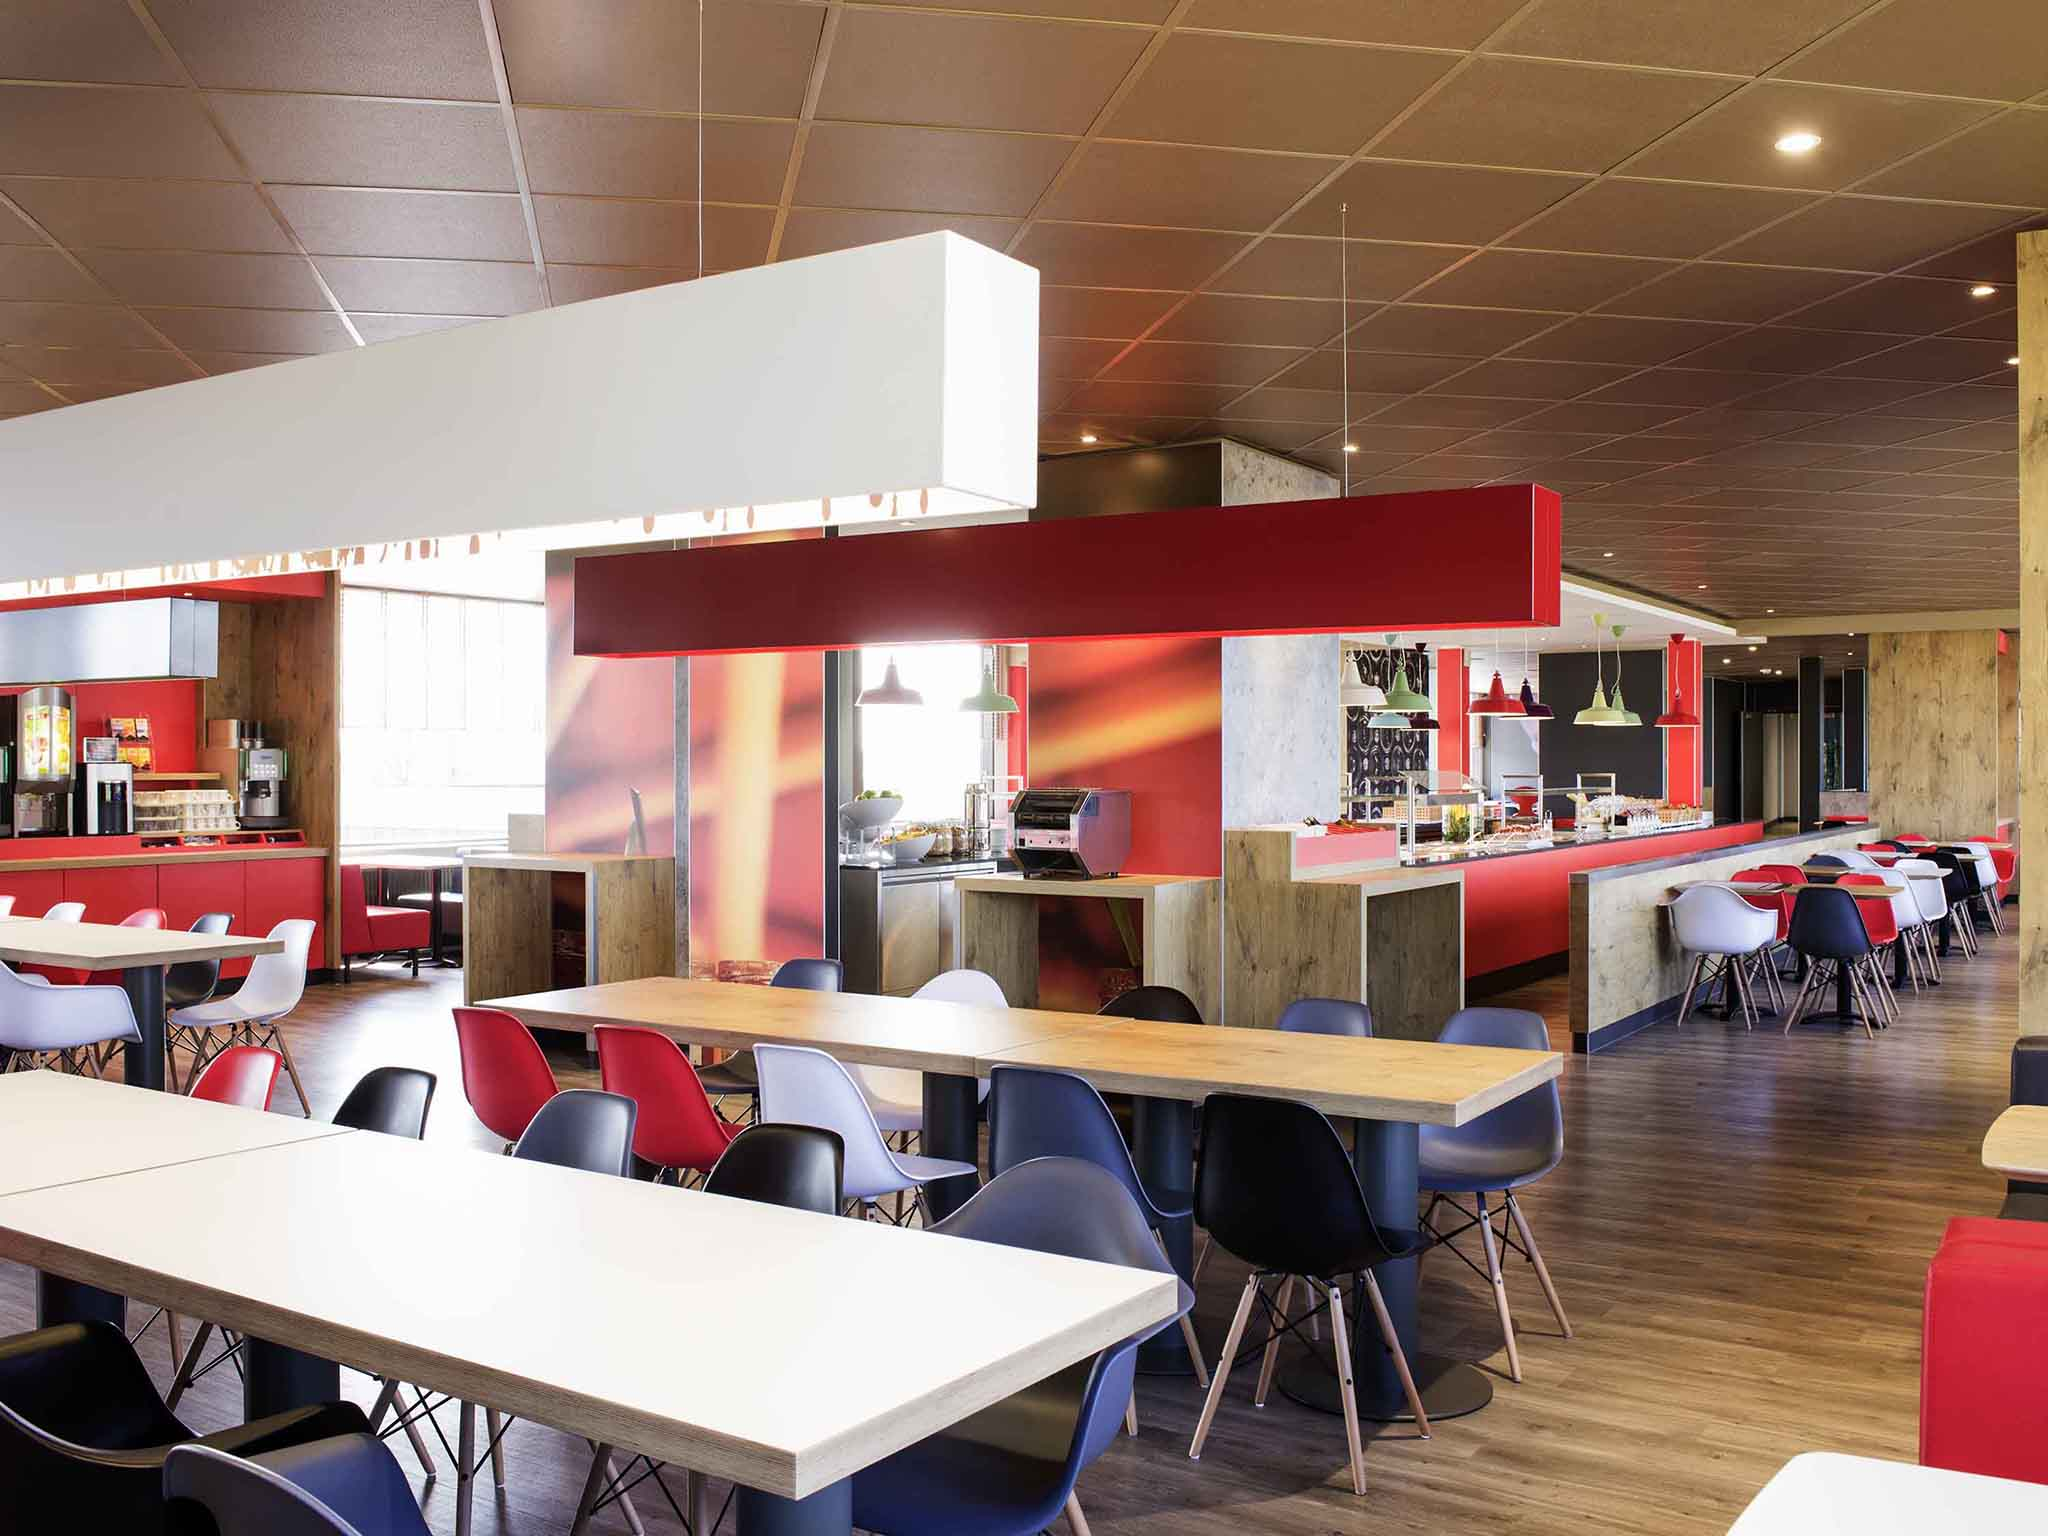 Cheap Hotels Near Schiphol Airport Amsterdam Holidays Oo